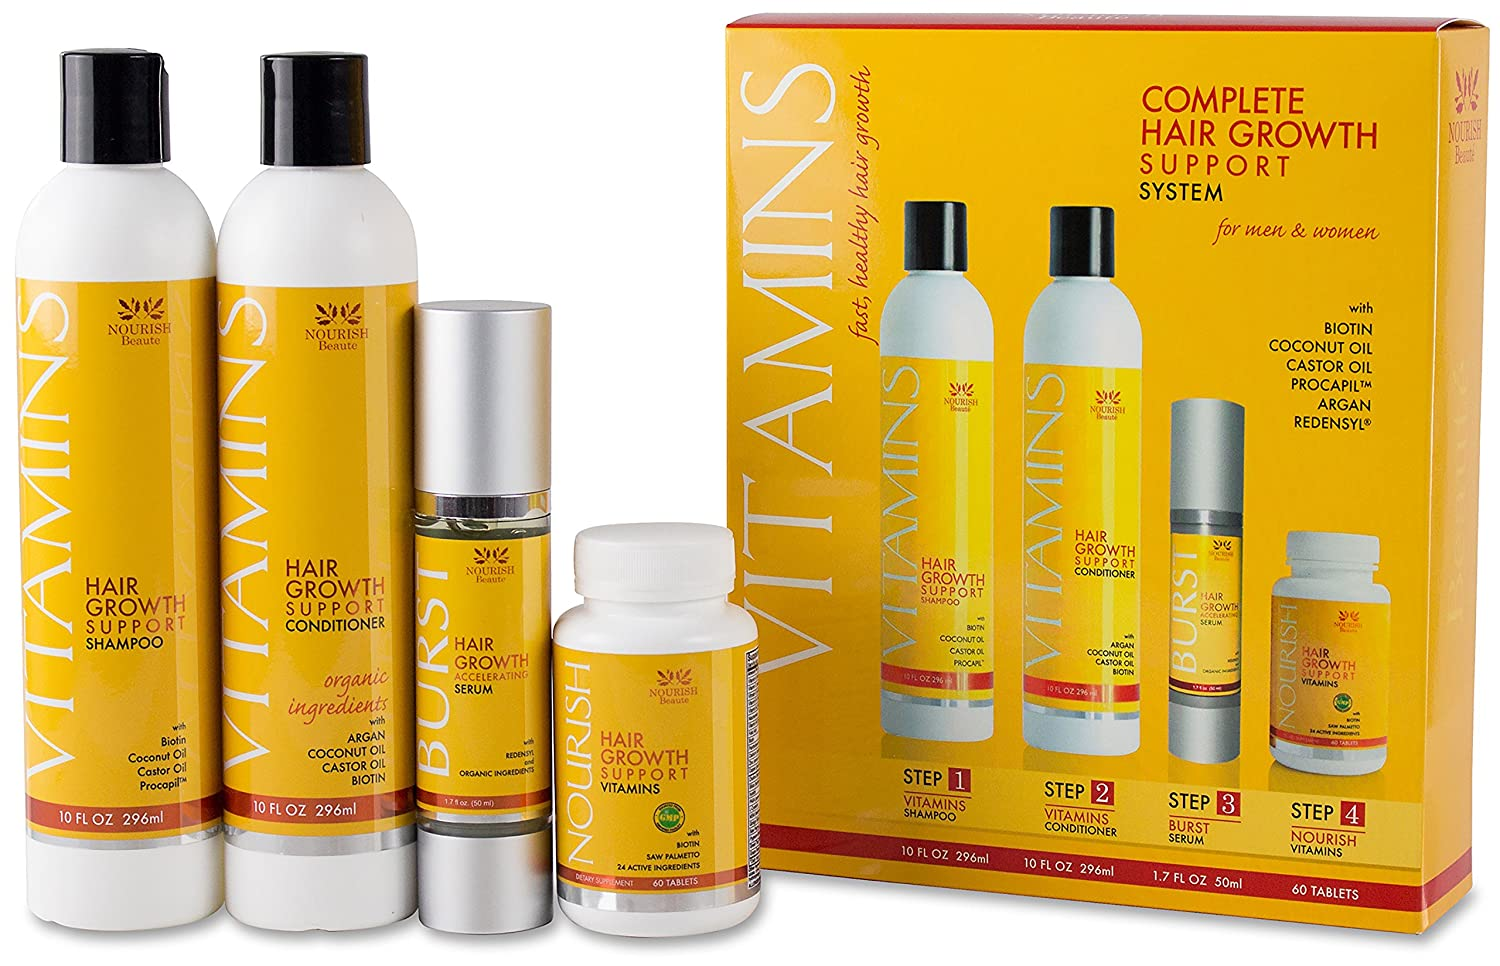 Complete Hair Growth Support System Kit by Nourish Beaute